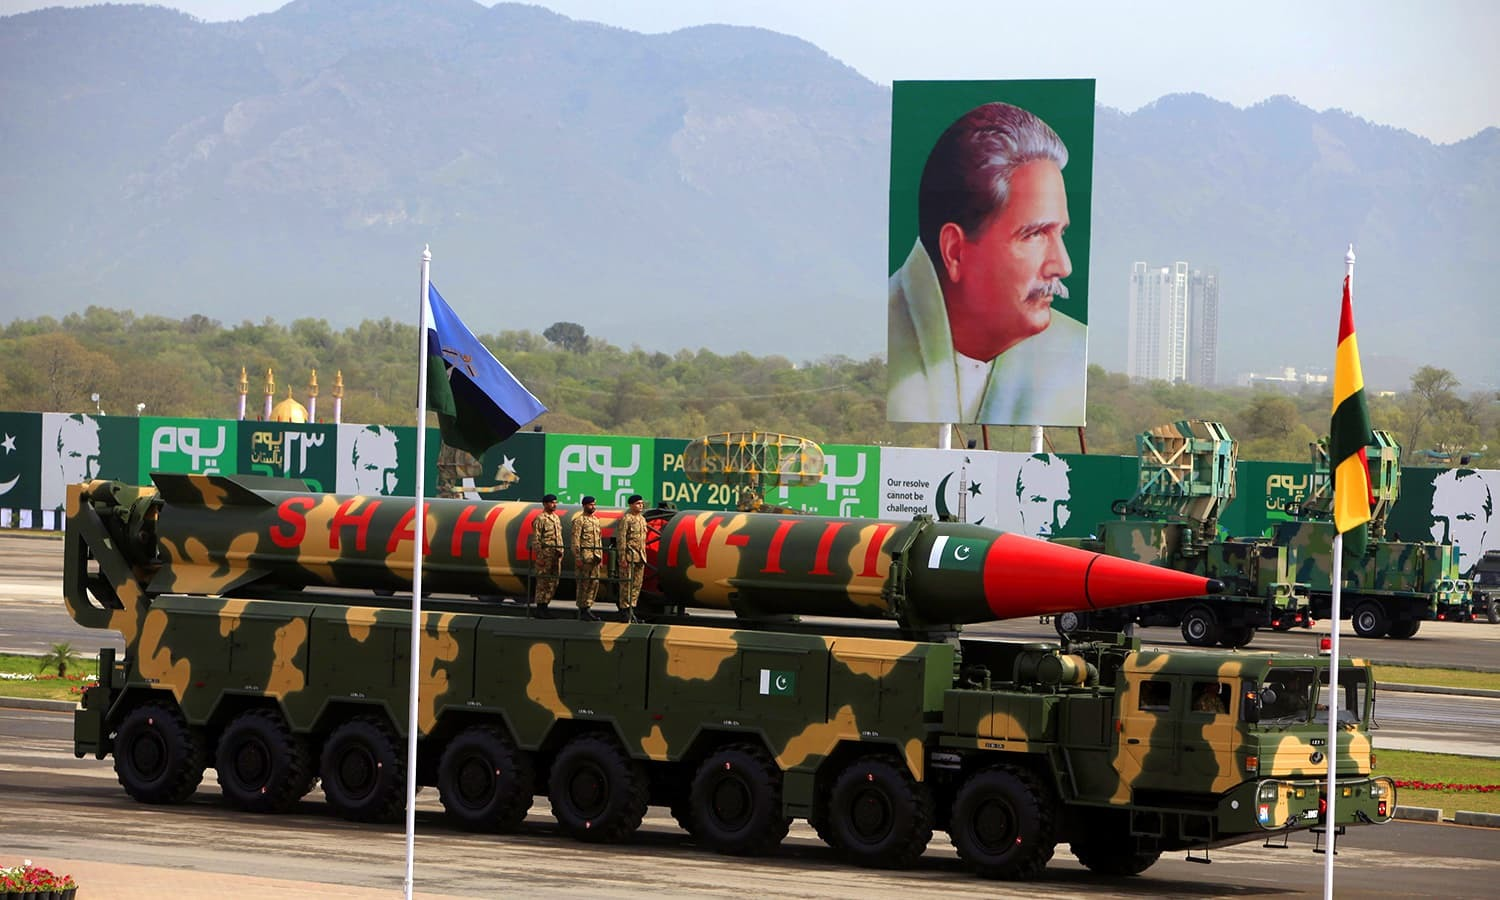 The Shaheen-III missile is displayed during the Pakistan Day parade in Islamabad, March 23, 2016.—Reuters/File